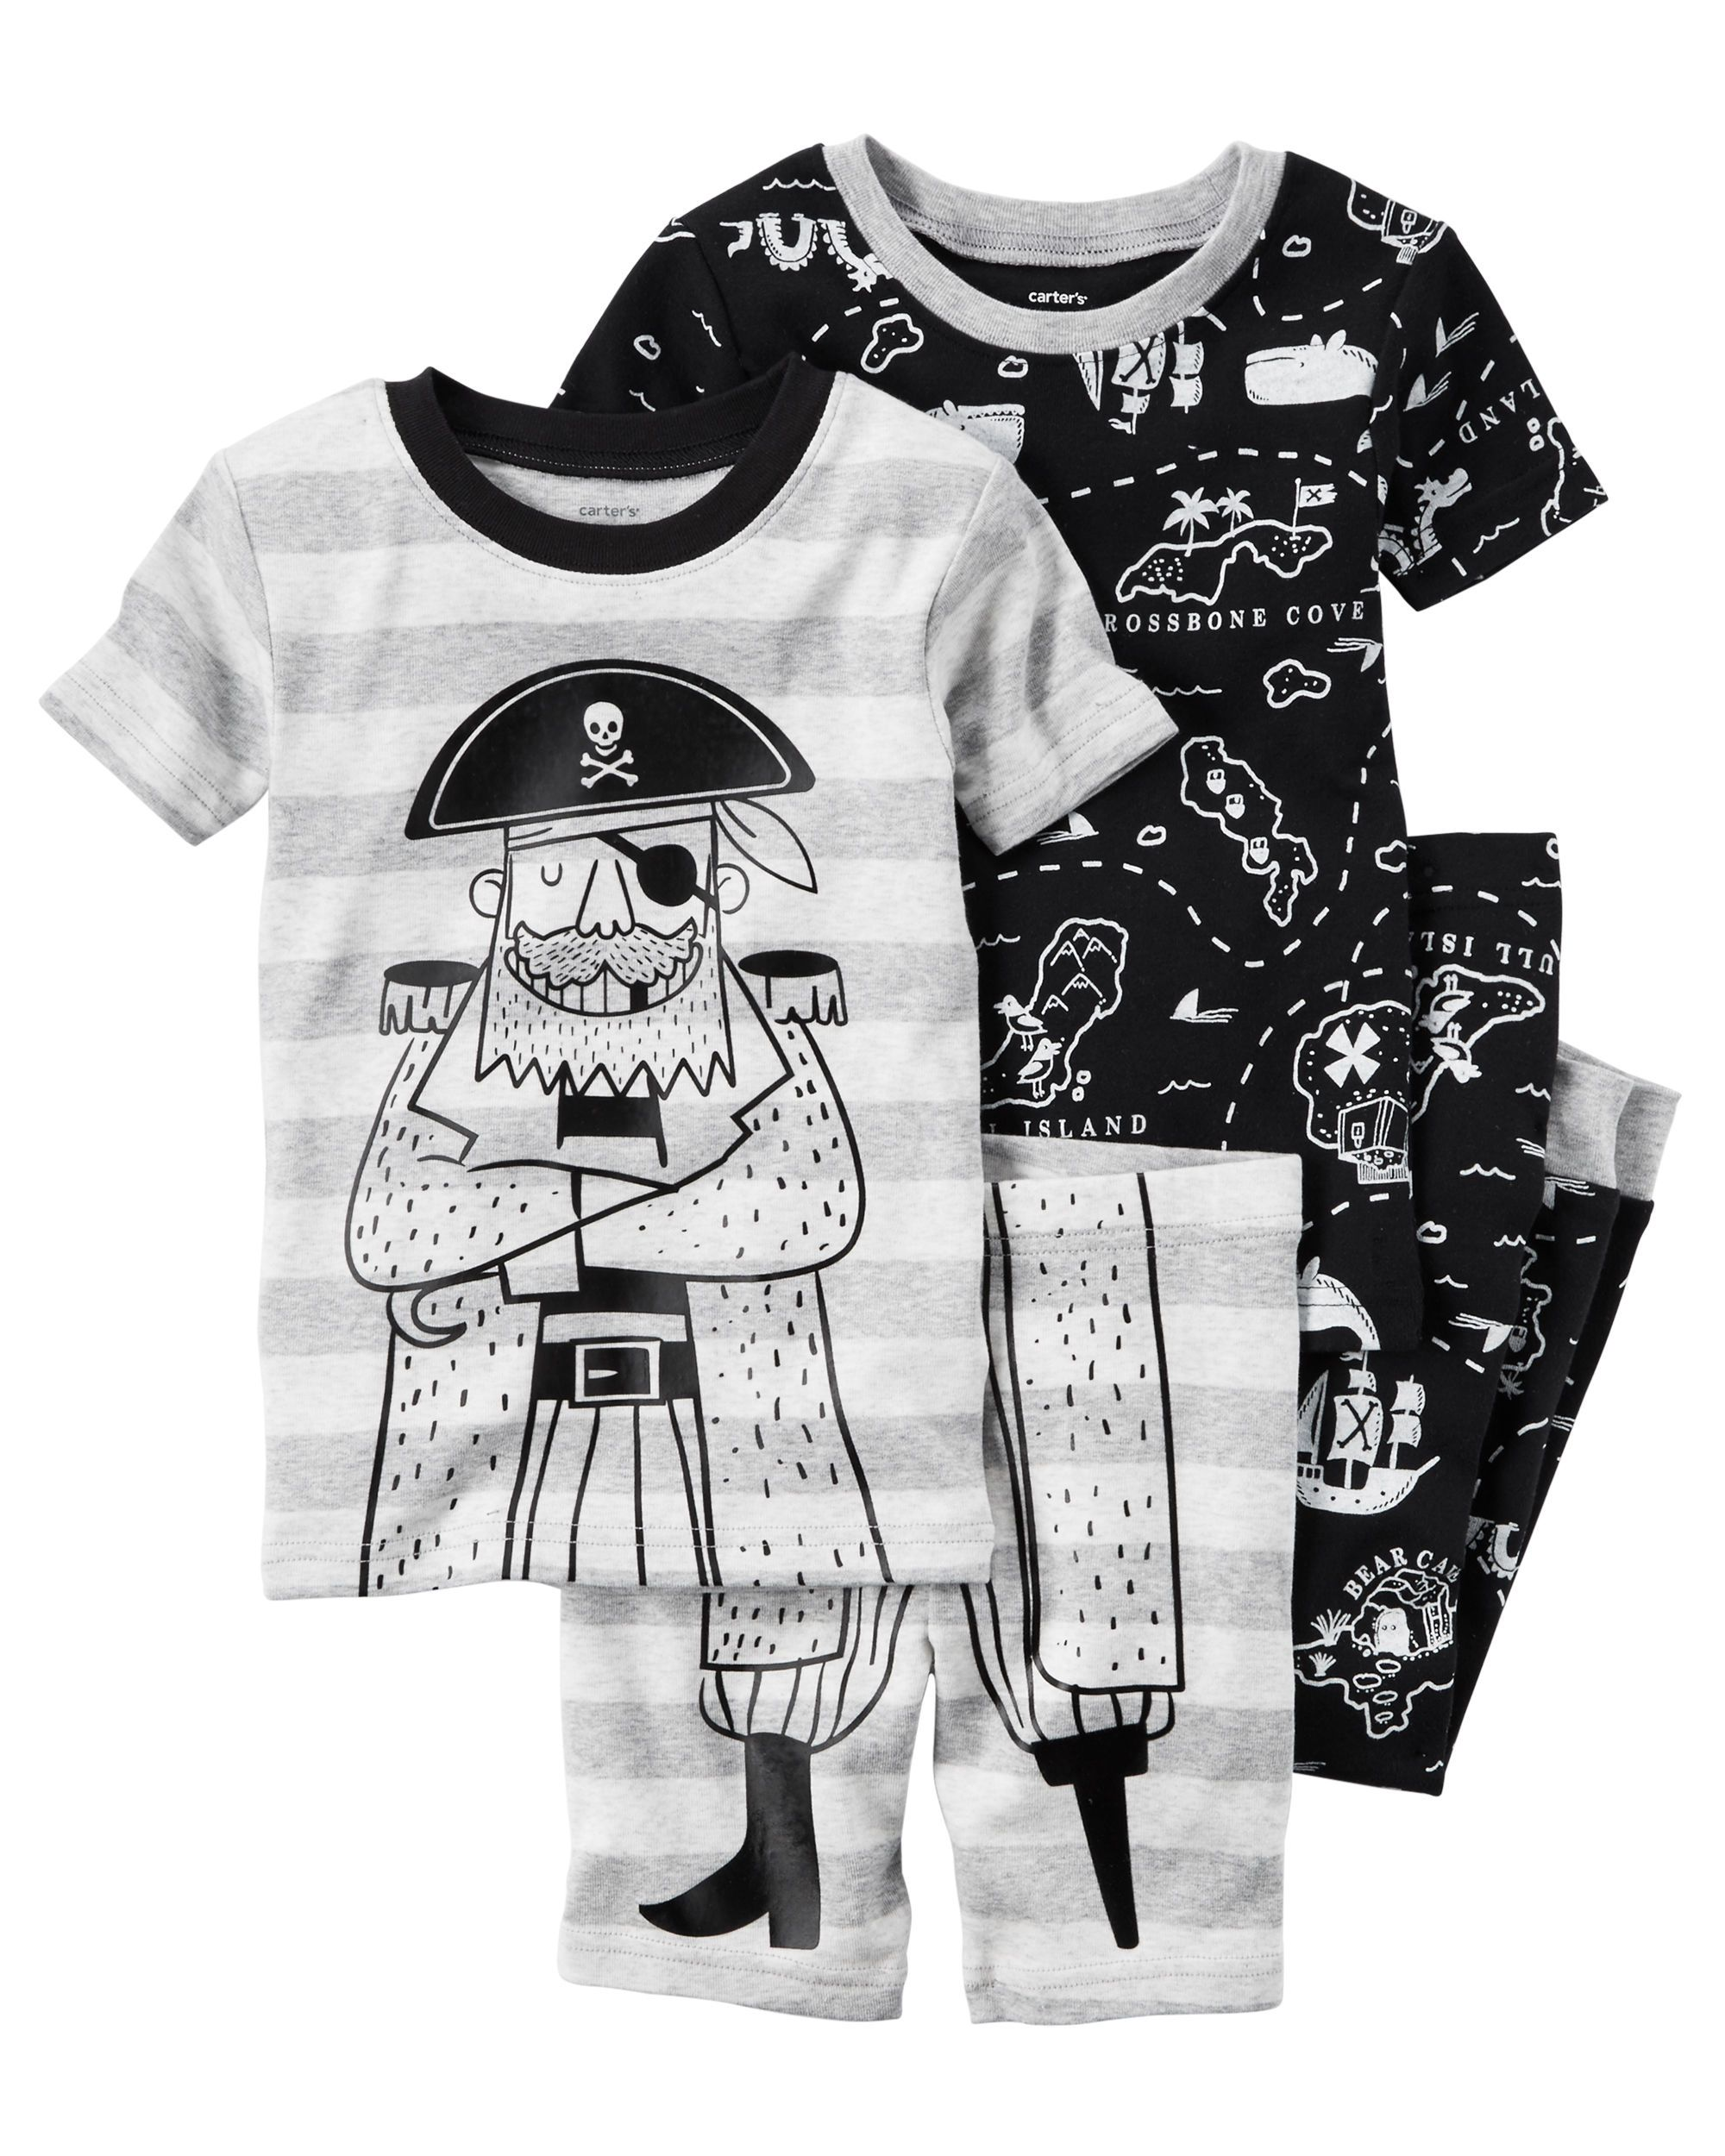 1bf5c0d2ffd1 NEW Carters 4 Piece Pirate Themed PJs NWT 2T 3T 4T Boys Pajamas Captain Boys  Pajama